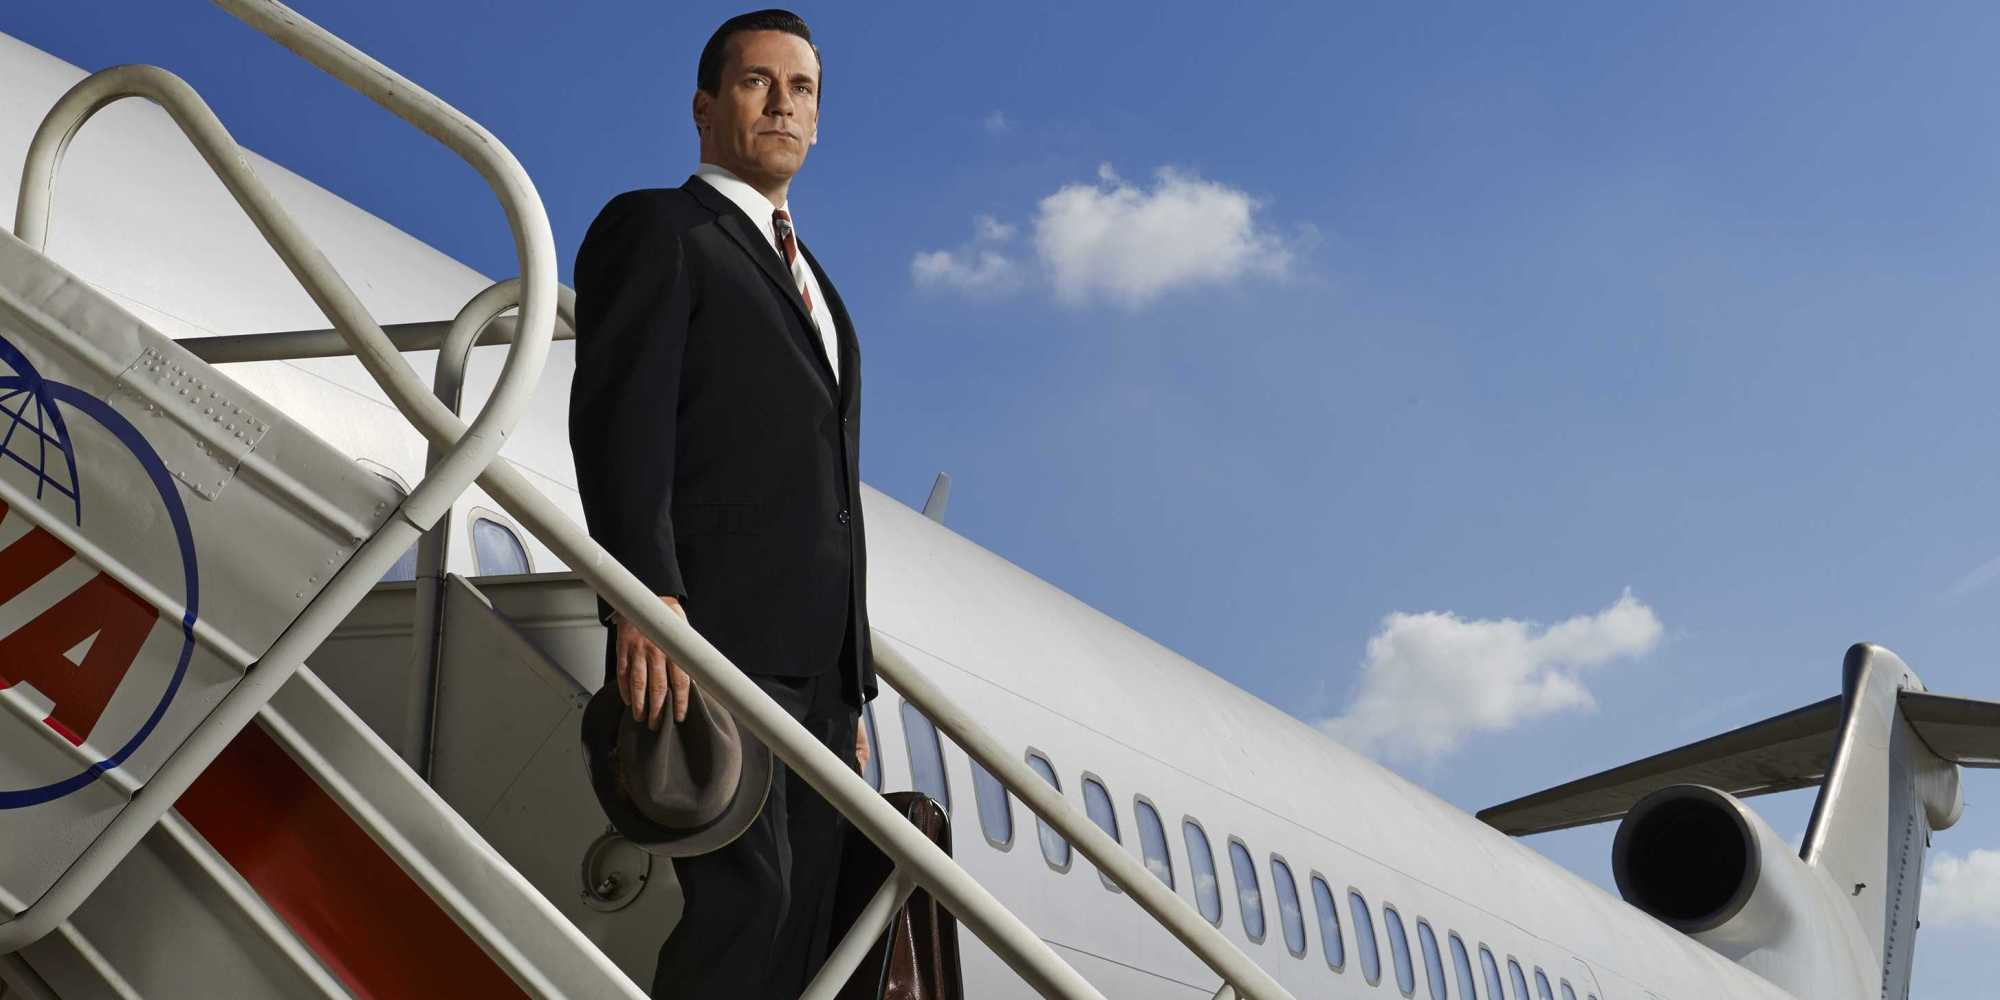 mad men season 7 - photo #23